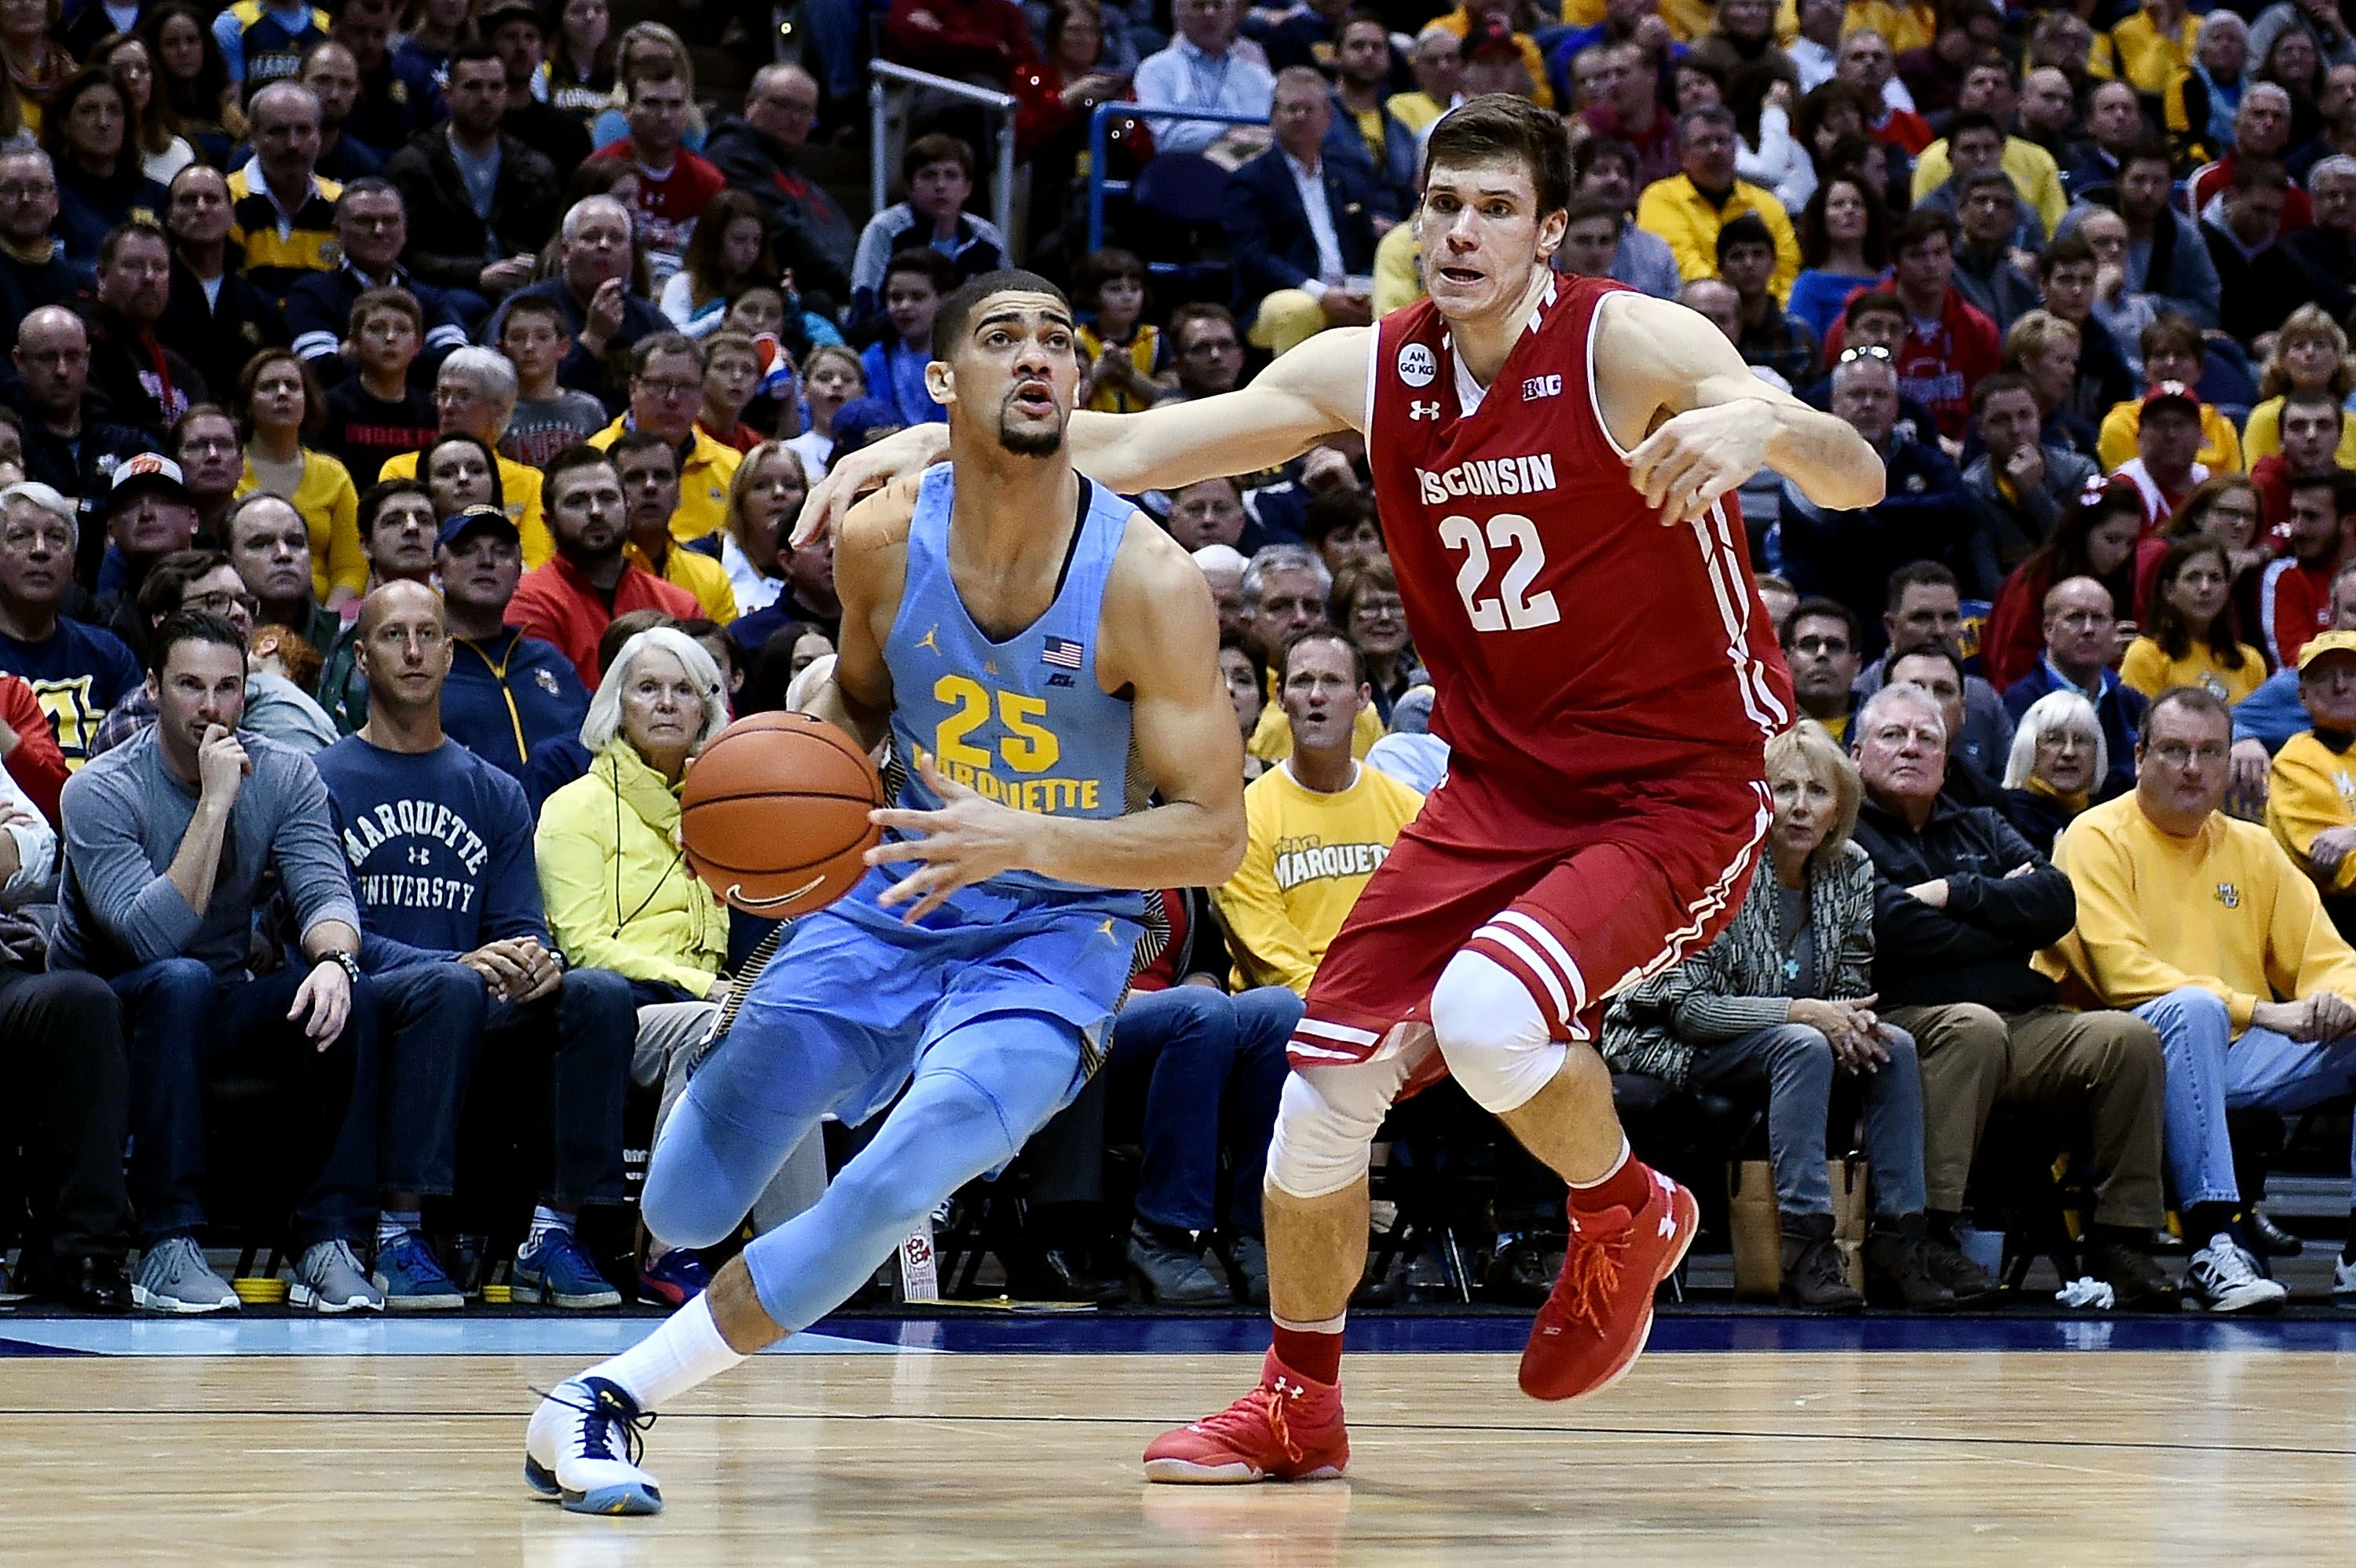 Wisconsin vs. Marquette: 2018-19 College basketball preview, TV schedule